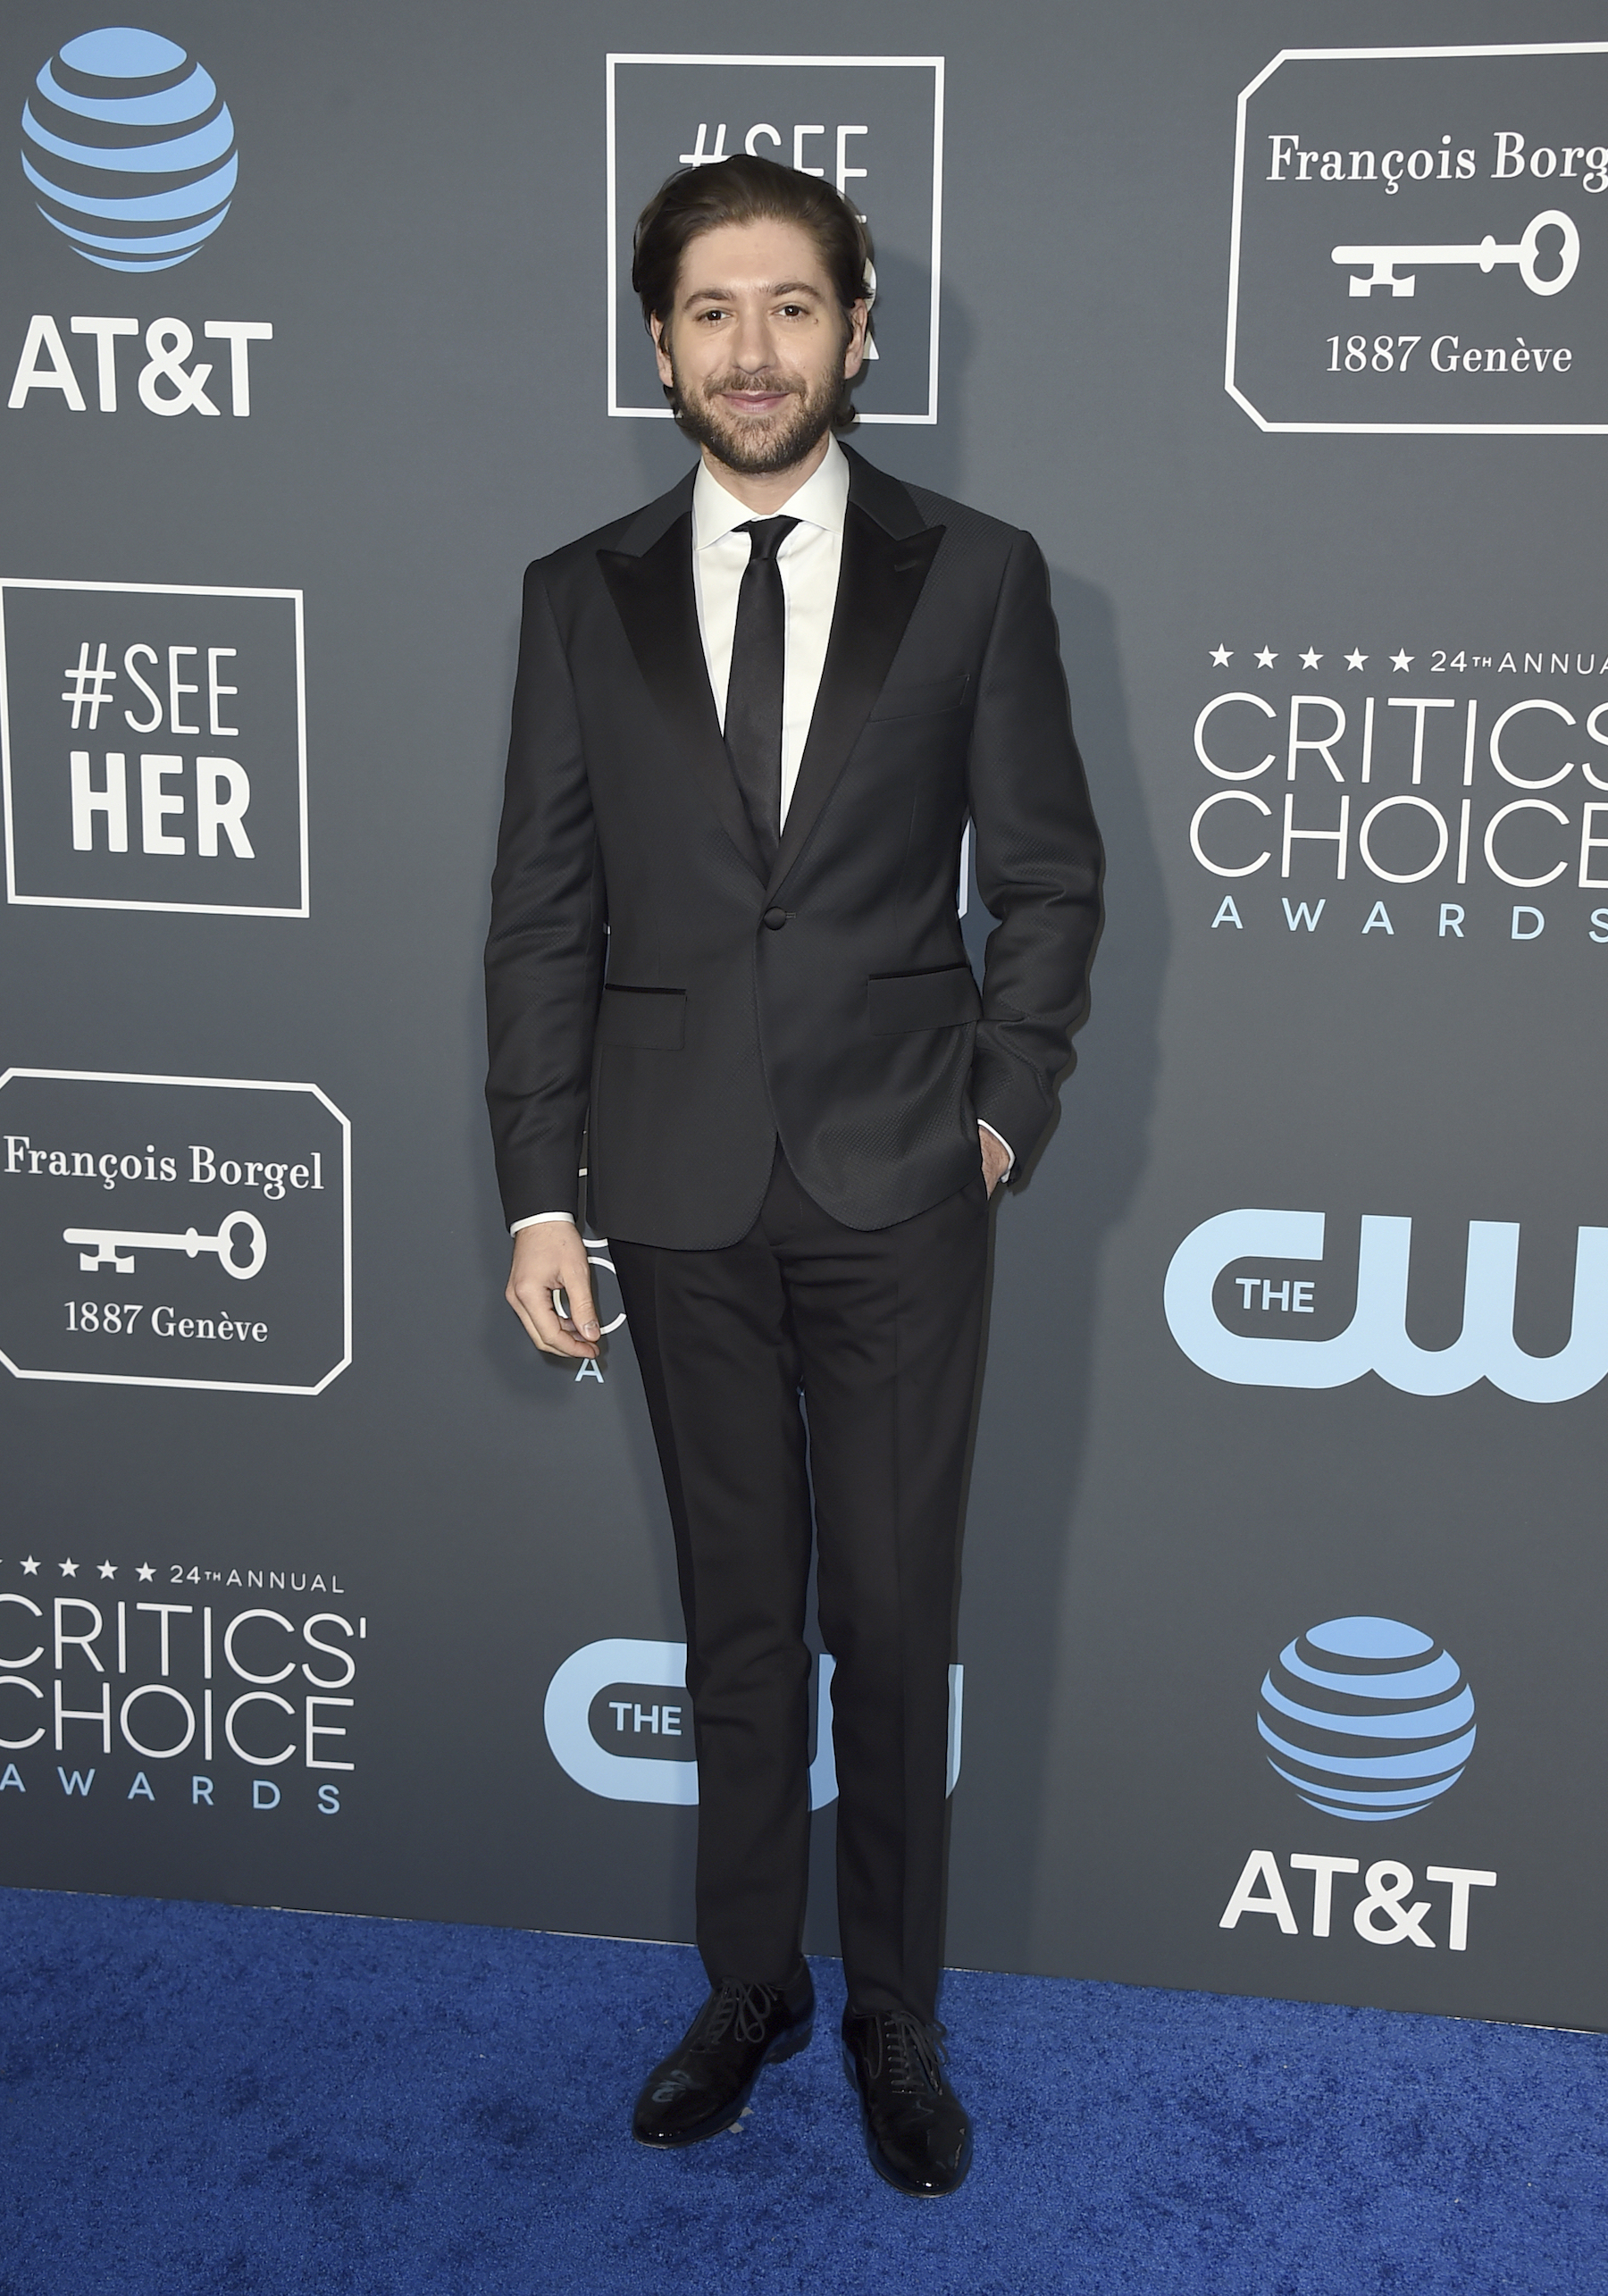 <div class='meta'><div class='origin-logo' data-origin='AP'></div><span class='caption-text' data-credit='Jordan Strauss/Invision/AP'>Michael Zegen arrives at the 24th annual Critics' Choice Awards on Sunday, Jan. 13, 2019, at the Barker Hangar in Santa Monica, Calif.</span></div>